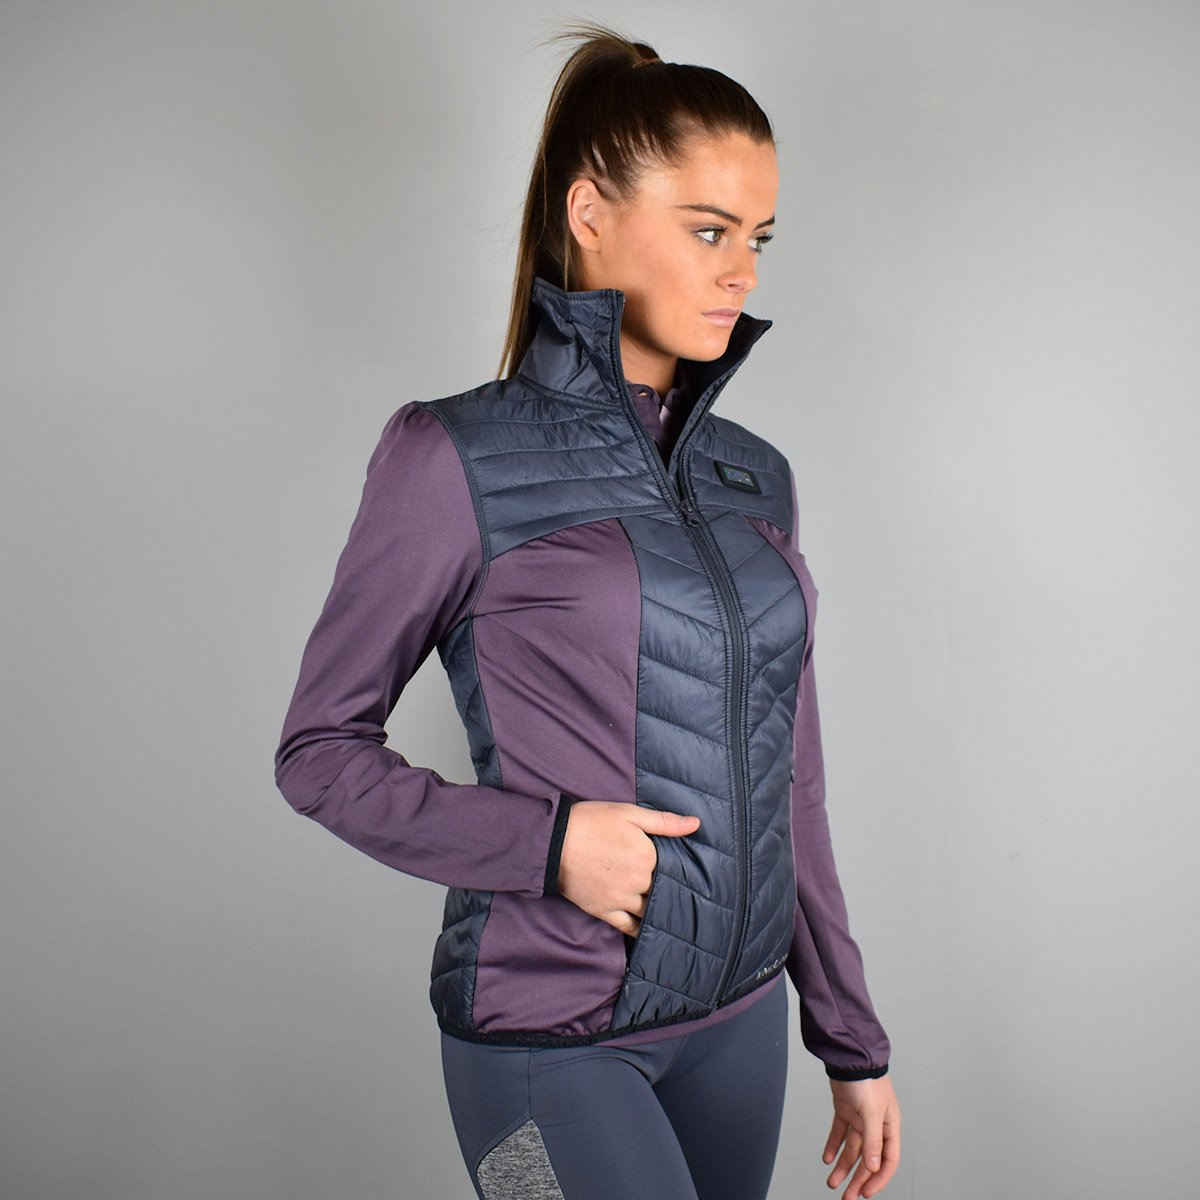 Kingsland Klawock Ladies Jacket in Violet Vintage